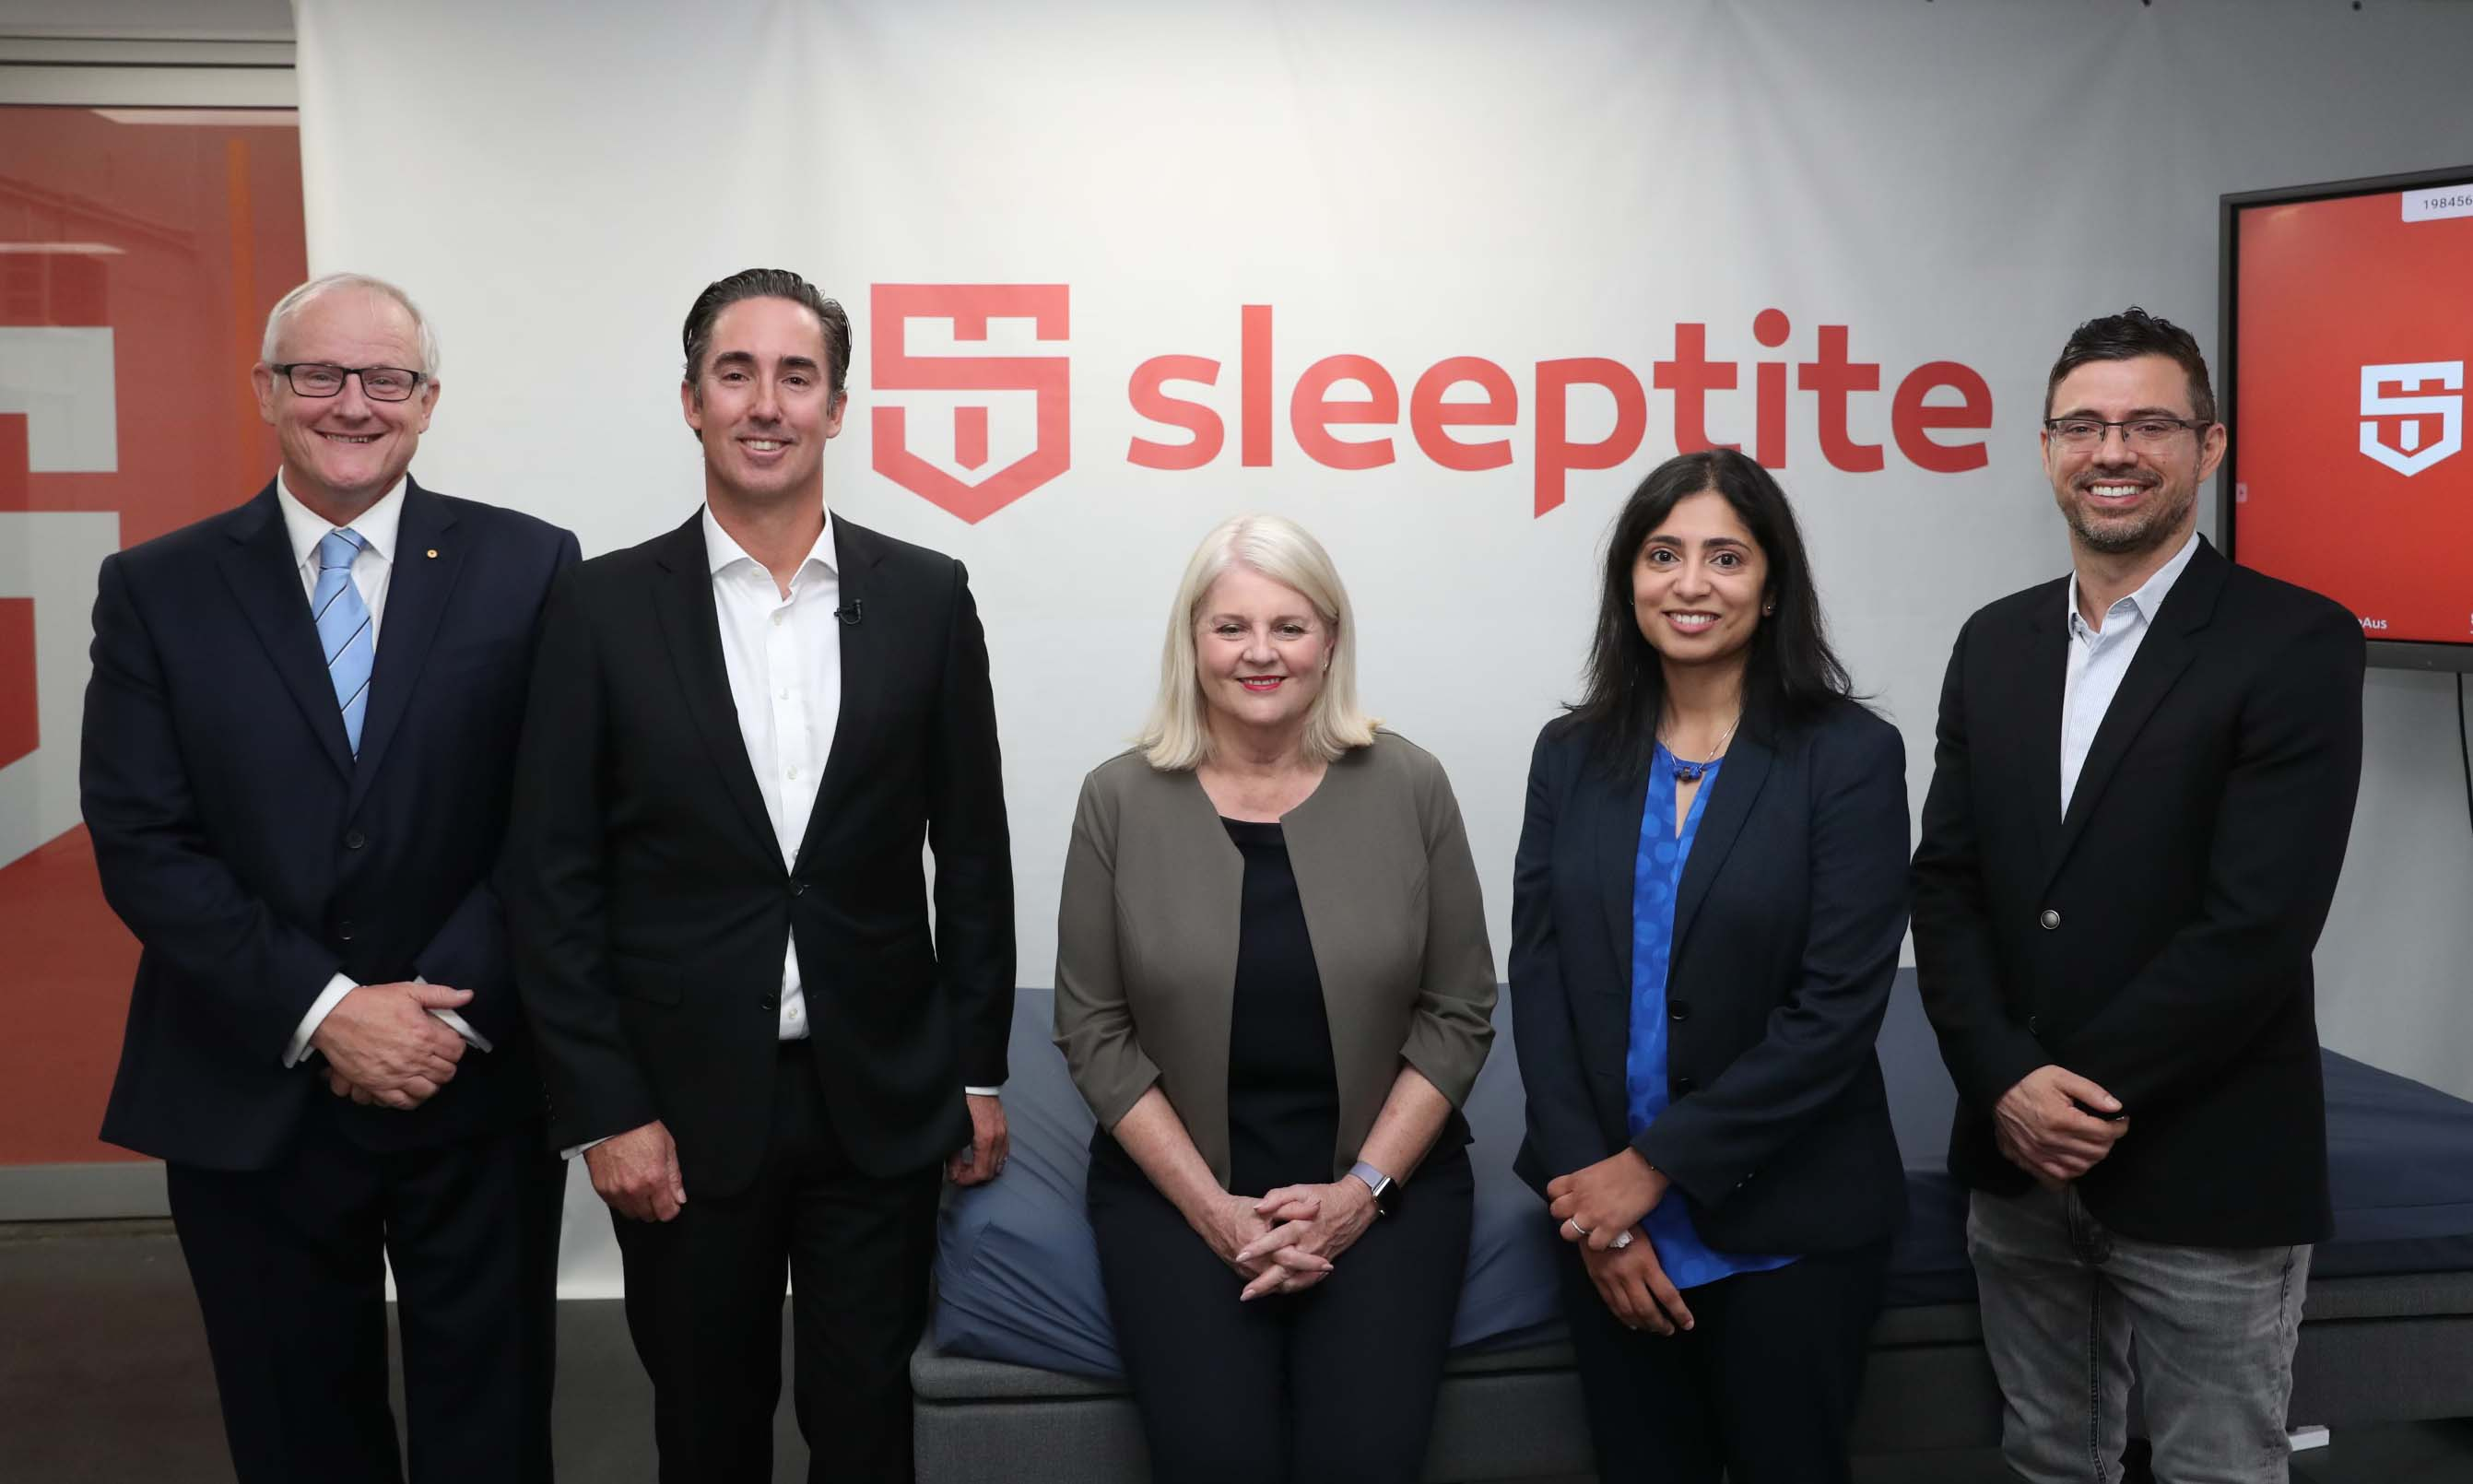 RMIT Deputy Vice-Chancellor Research and Innovation and Vice-President, Professor Calum Drummond, Sleeptite CEO Cameron van den Dungen, Federal Minister for Industry, Science and Technology, Karen Andrews, lead researcher Professor Madhu Bhaskaran and Bill Mantzis, Managing Director Sleepeezee Bedding Australia.